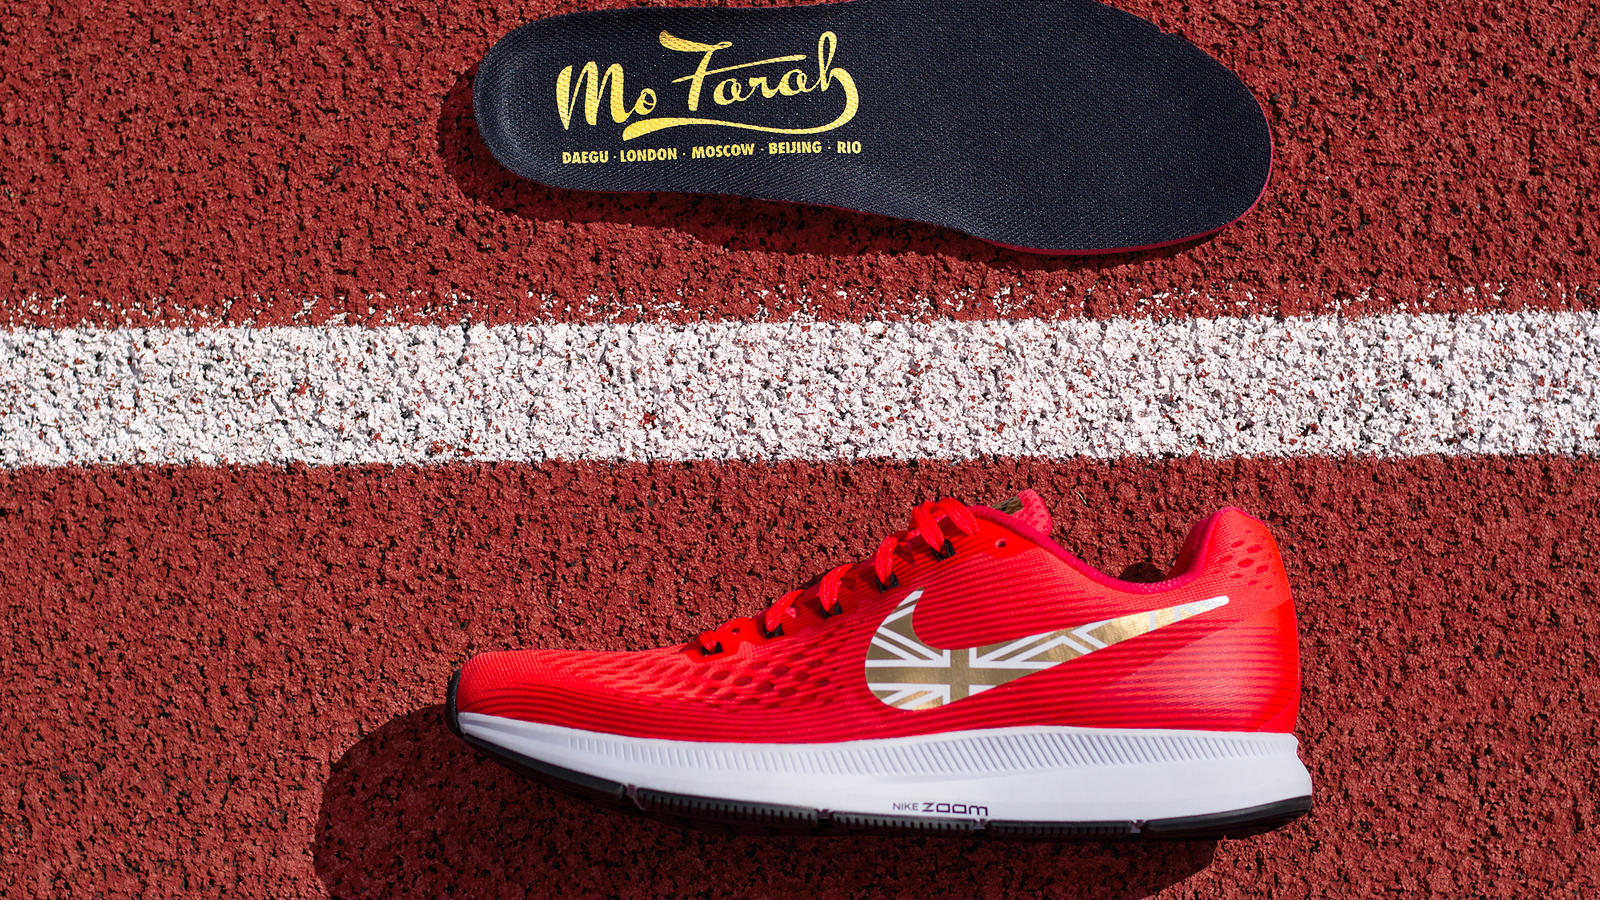 Mo Farah Takes on the London Track One Last Time Nike News